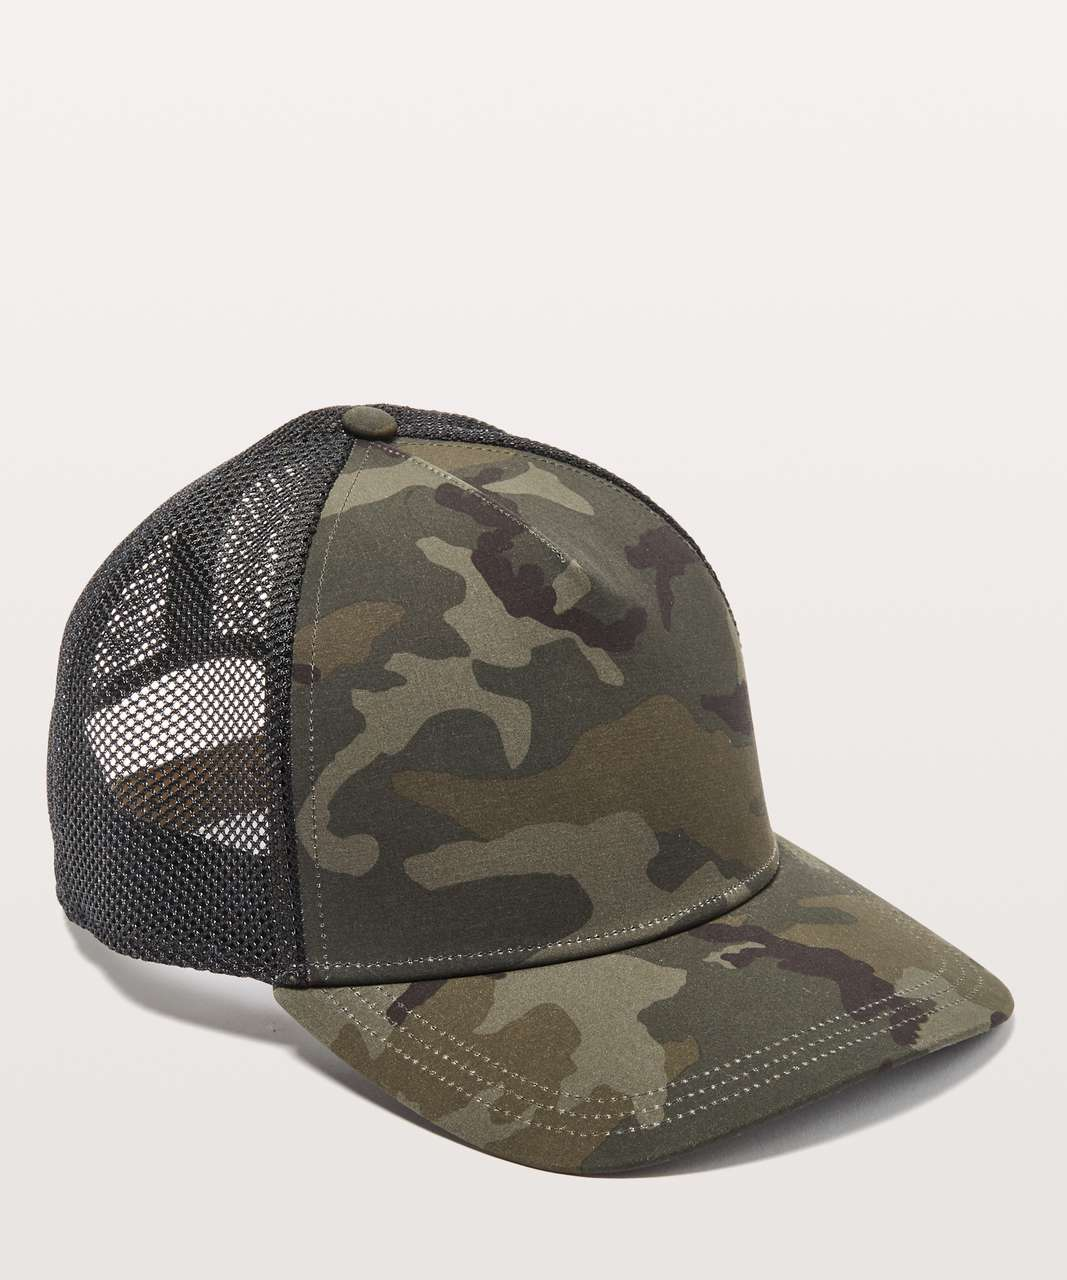 Lululemon Commission Hat - Woodland Camo Gator Green Dark Olive / Black